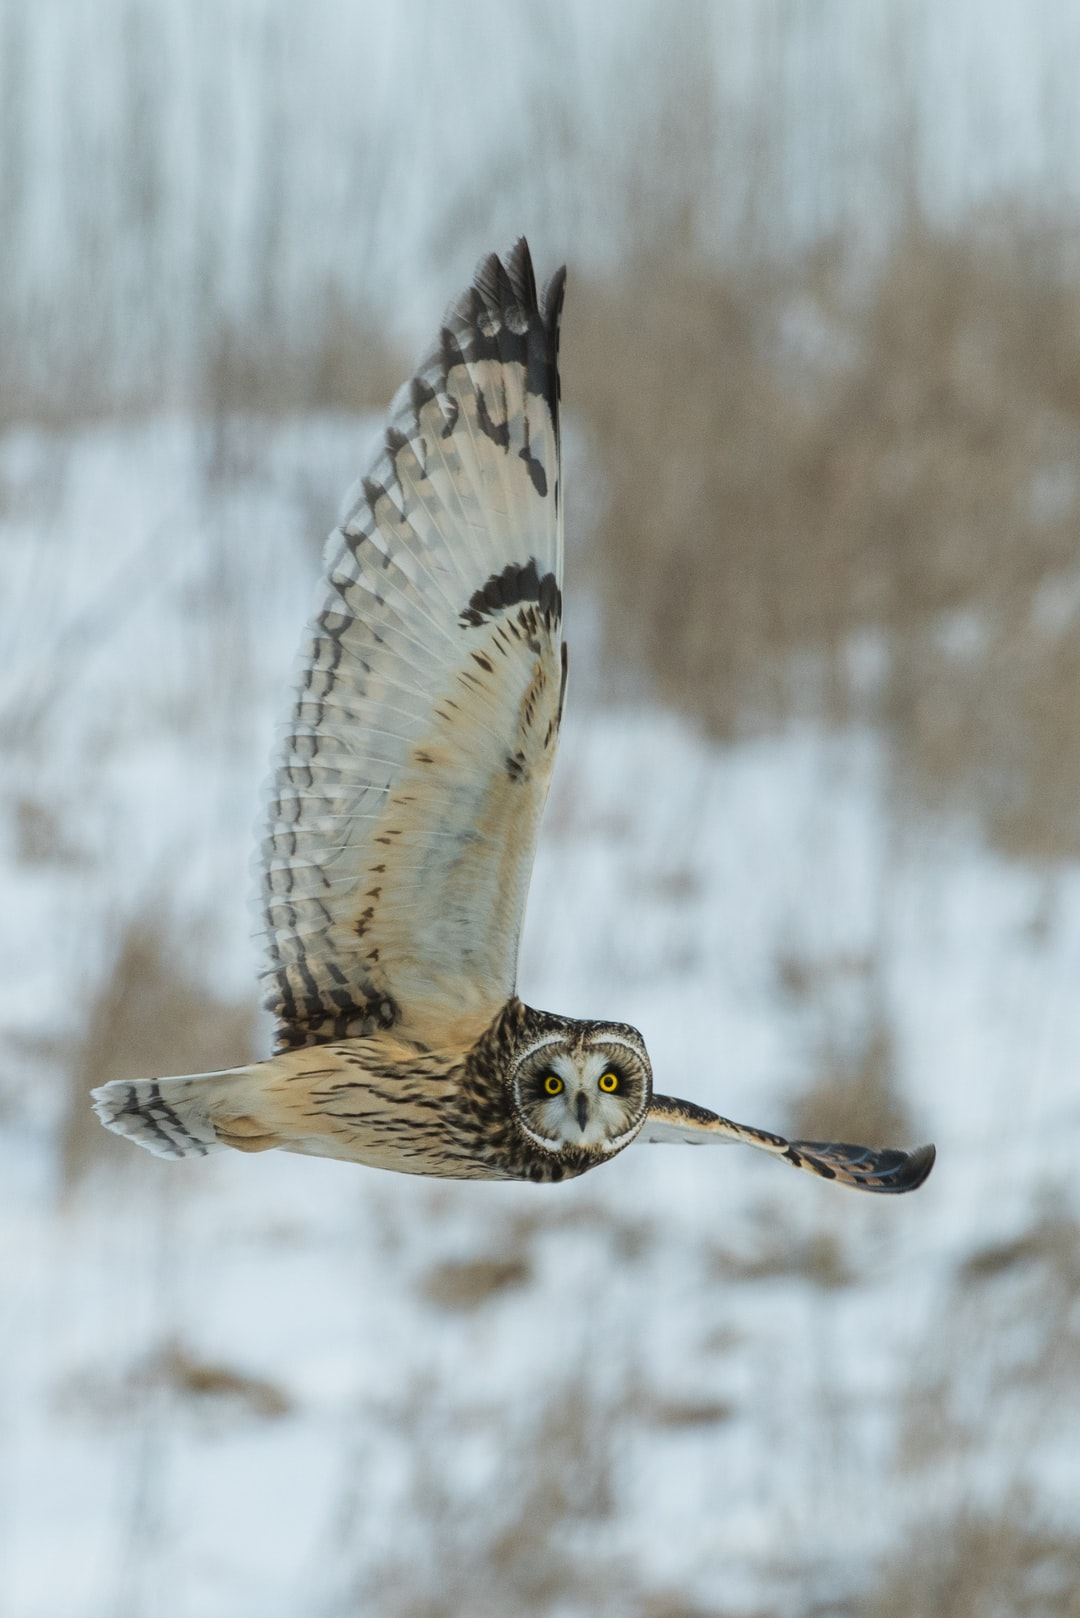 An  exceptional day for photographing owls in the wild! After days of snow and cold, the owls were very active and obviously hungry, taking to the air in the afternoon (generally they take to the air around dusk).  In the area there were about twenty owls , with as many as ten visible at one time.